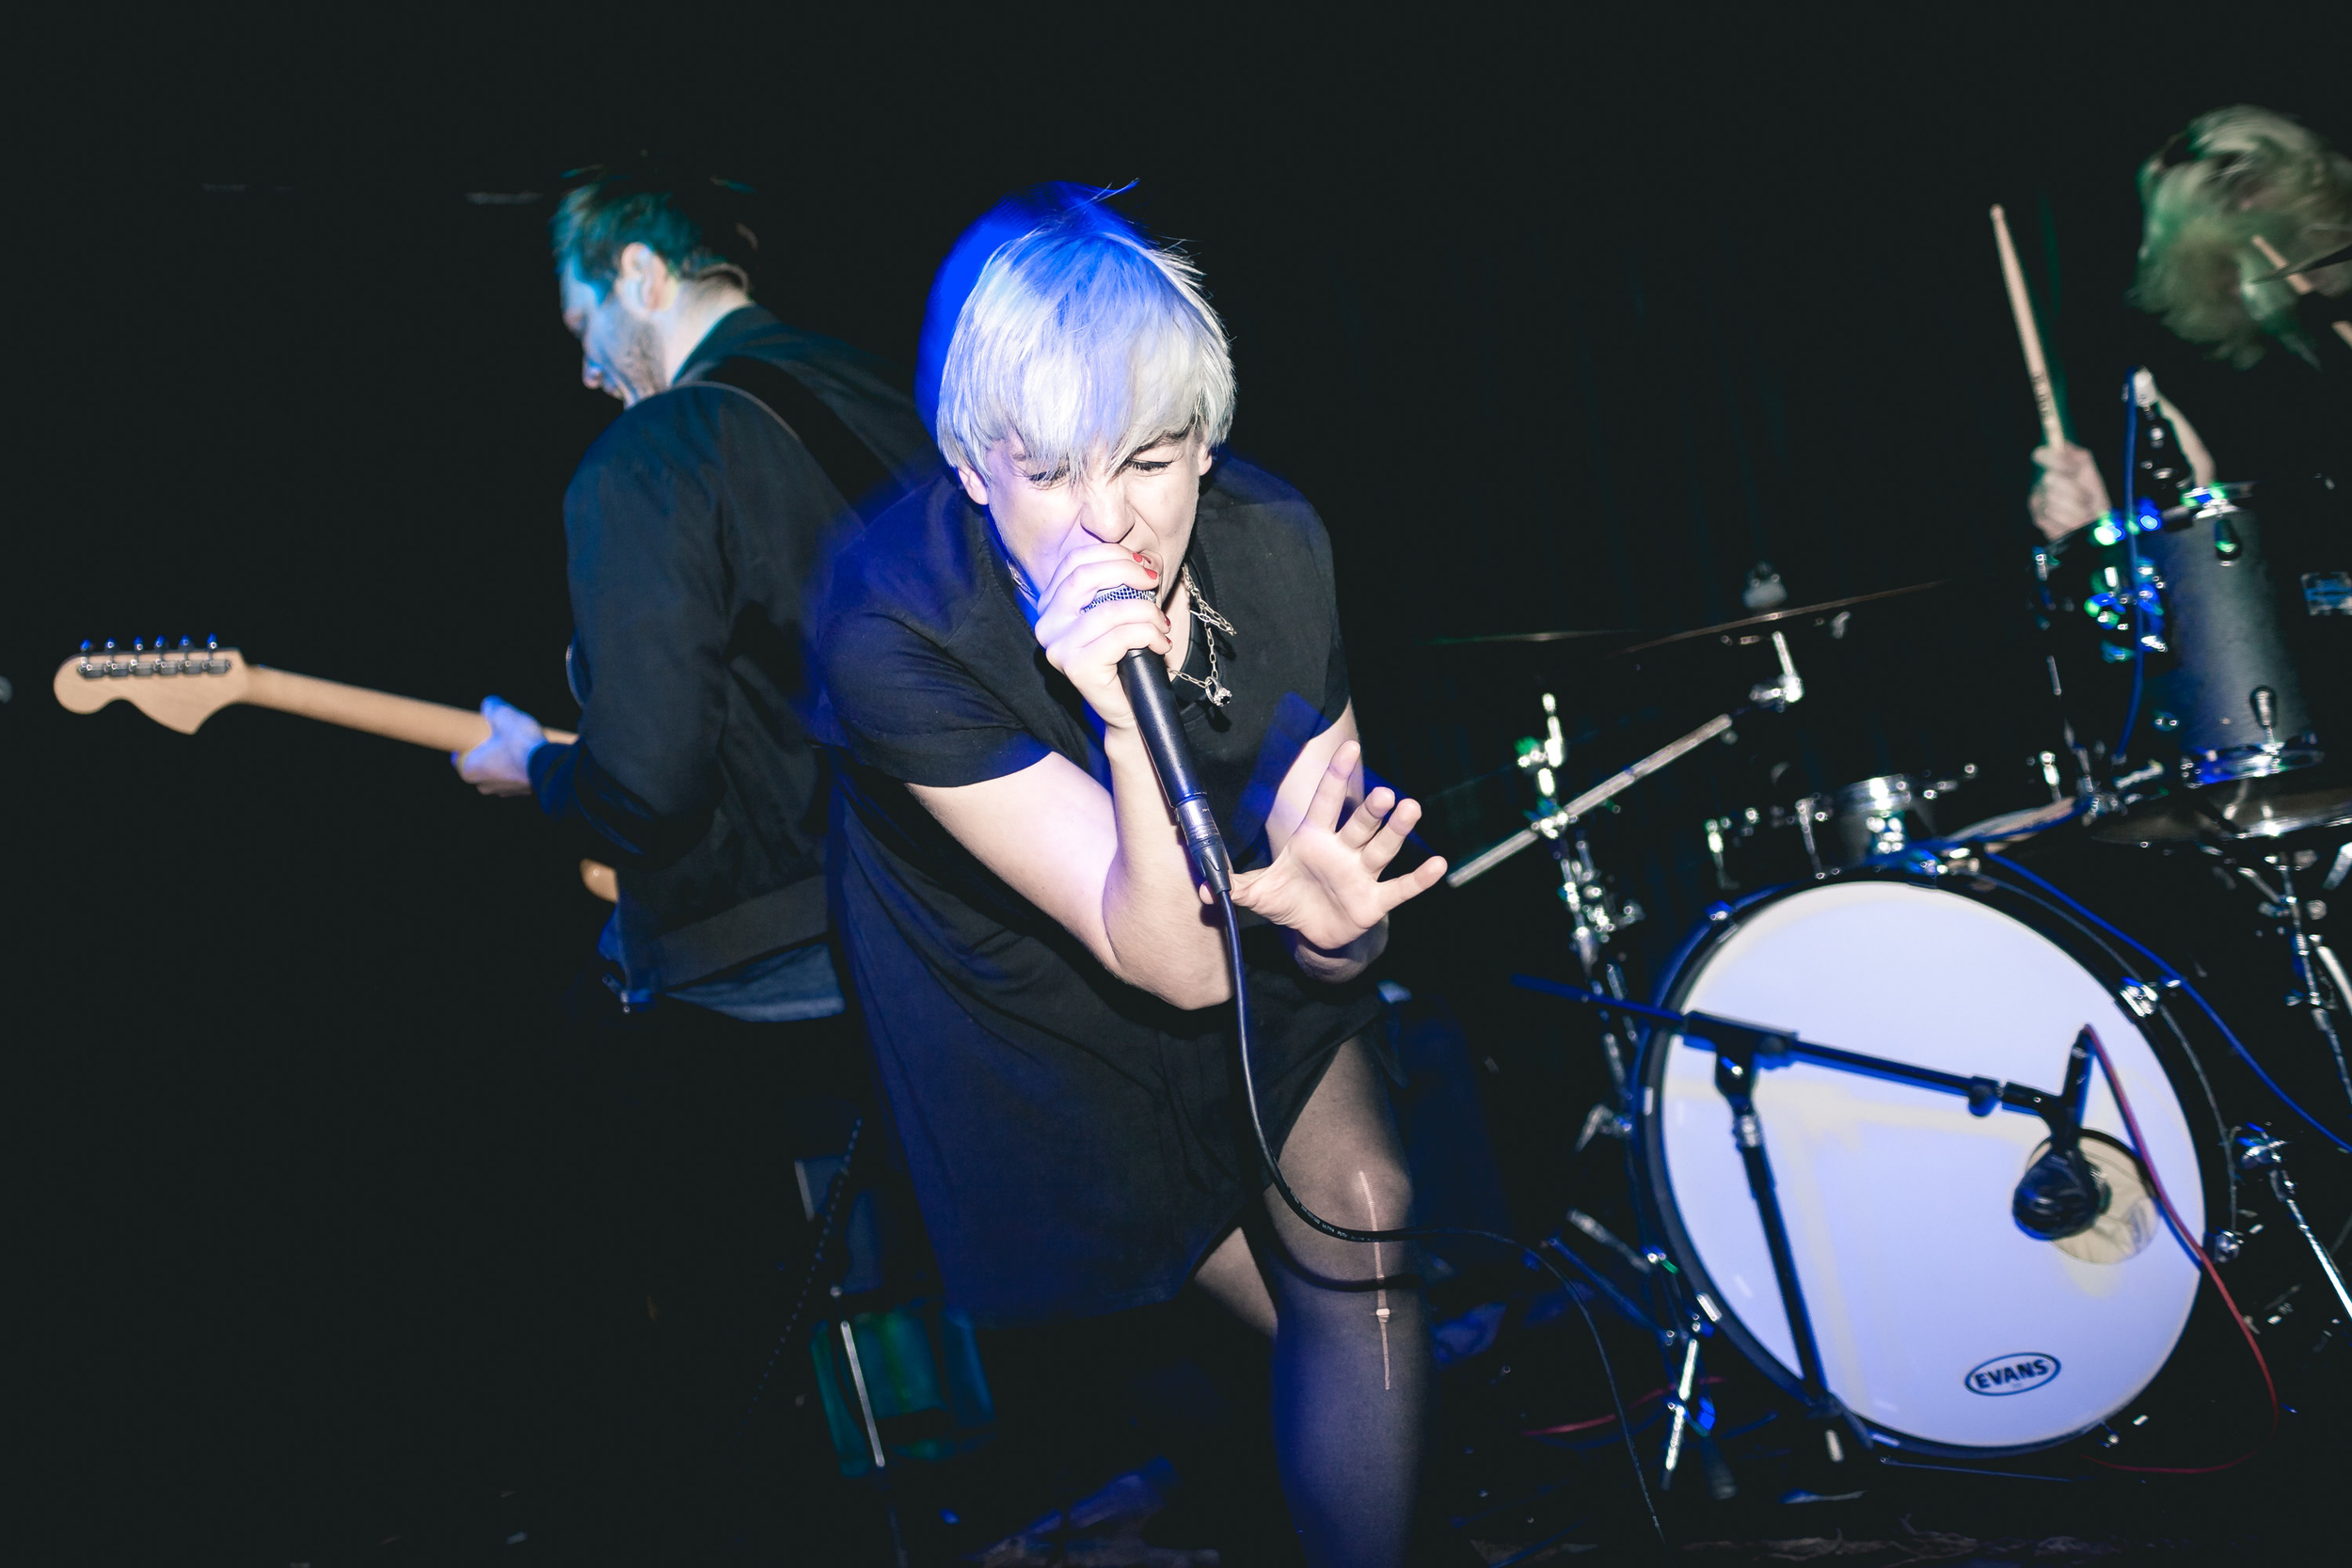 Vocalist Chlo Edwards giving it everything performing with hardcore band Vales in London